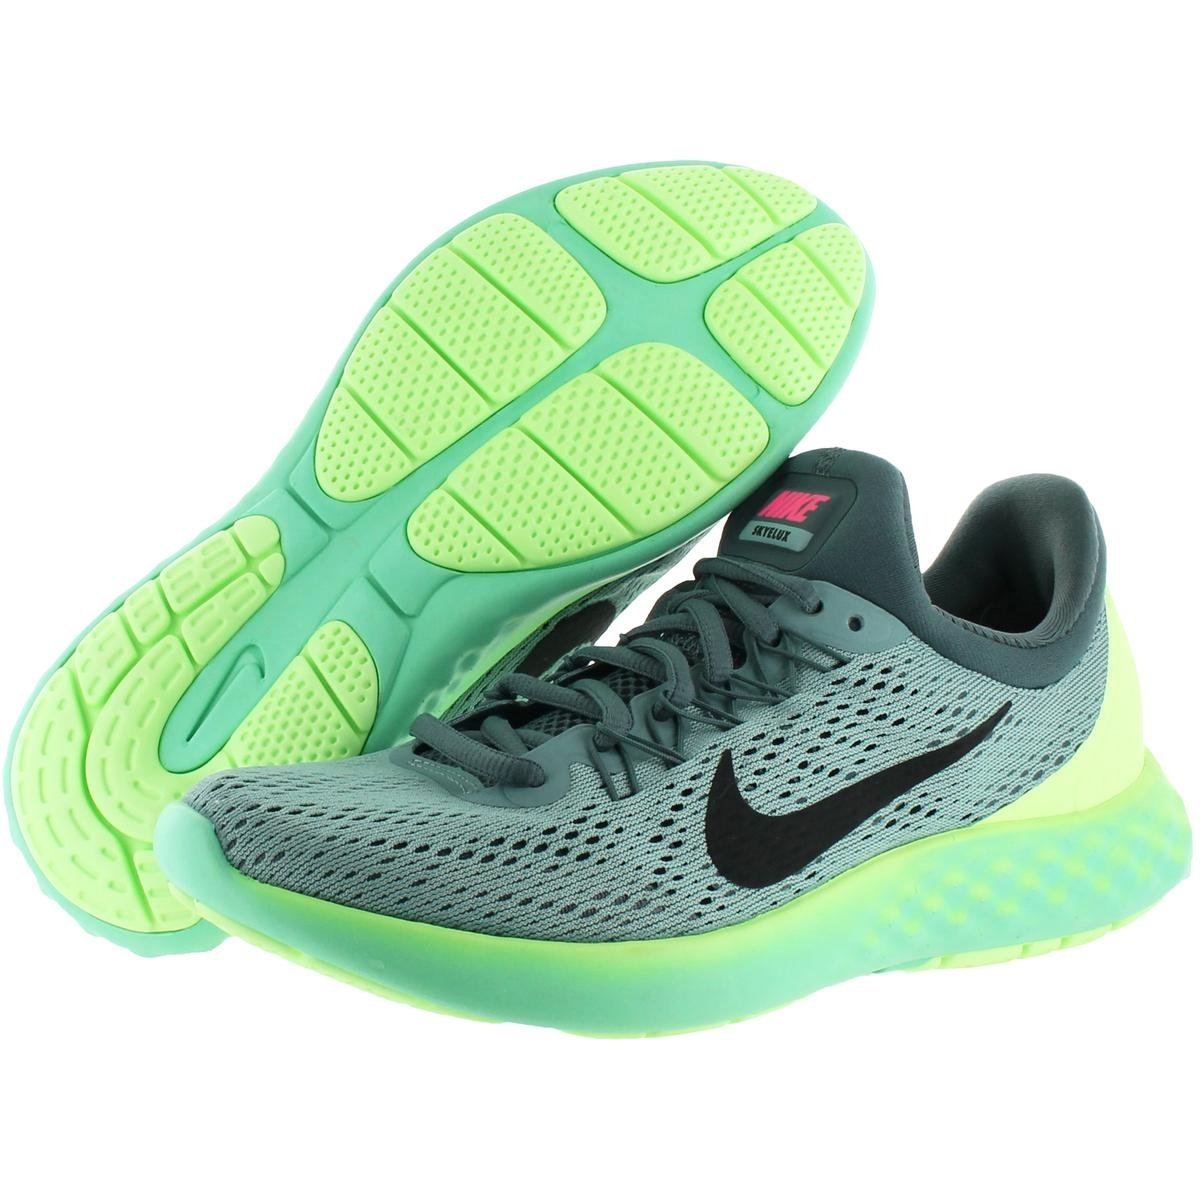 NIKE Womens Lunar Skyelux Round Toe Lace-up Running Shoes B01CJ3NNLS 12 M US Cannon/Black-hasta-ghost Green